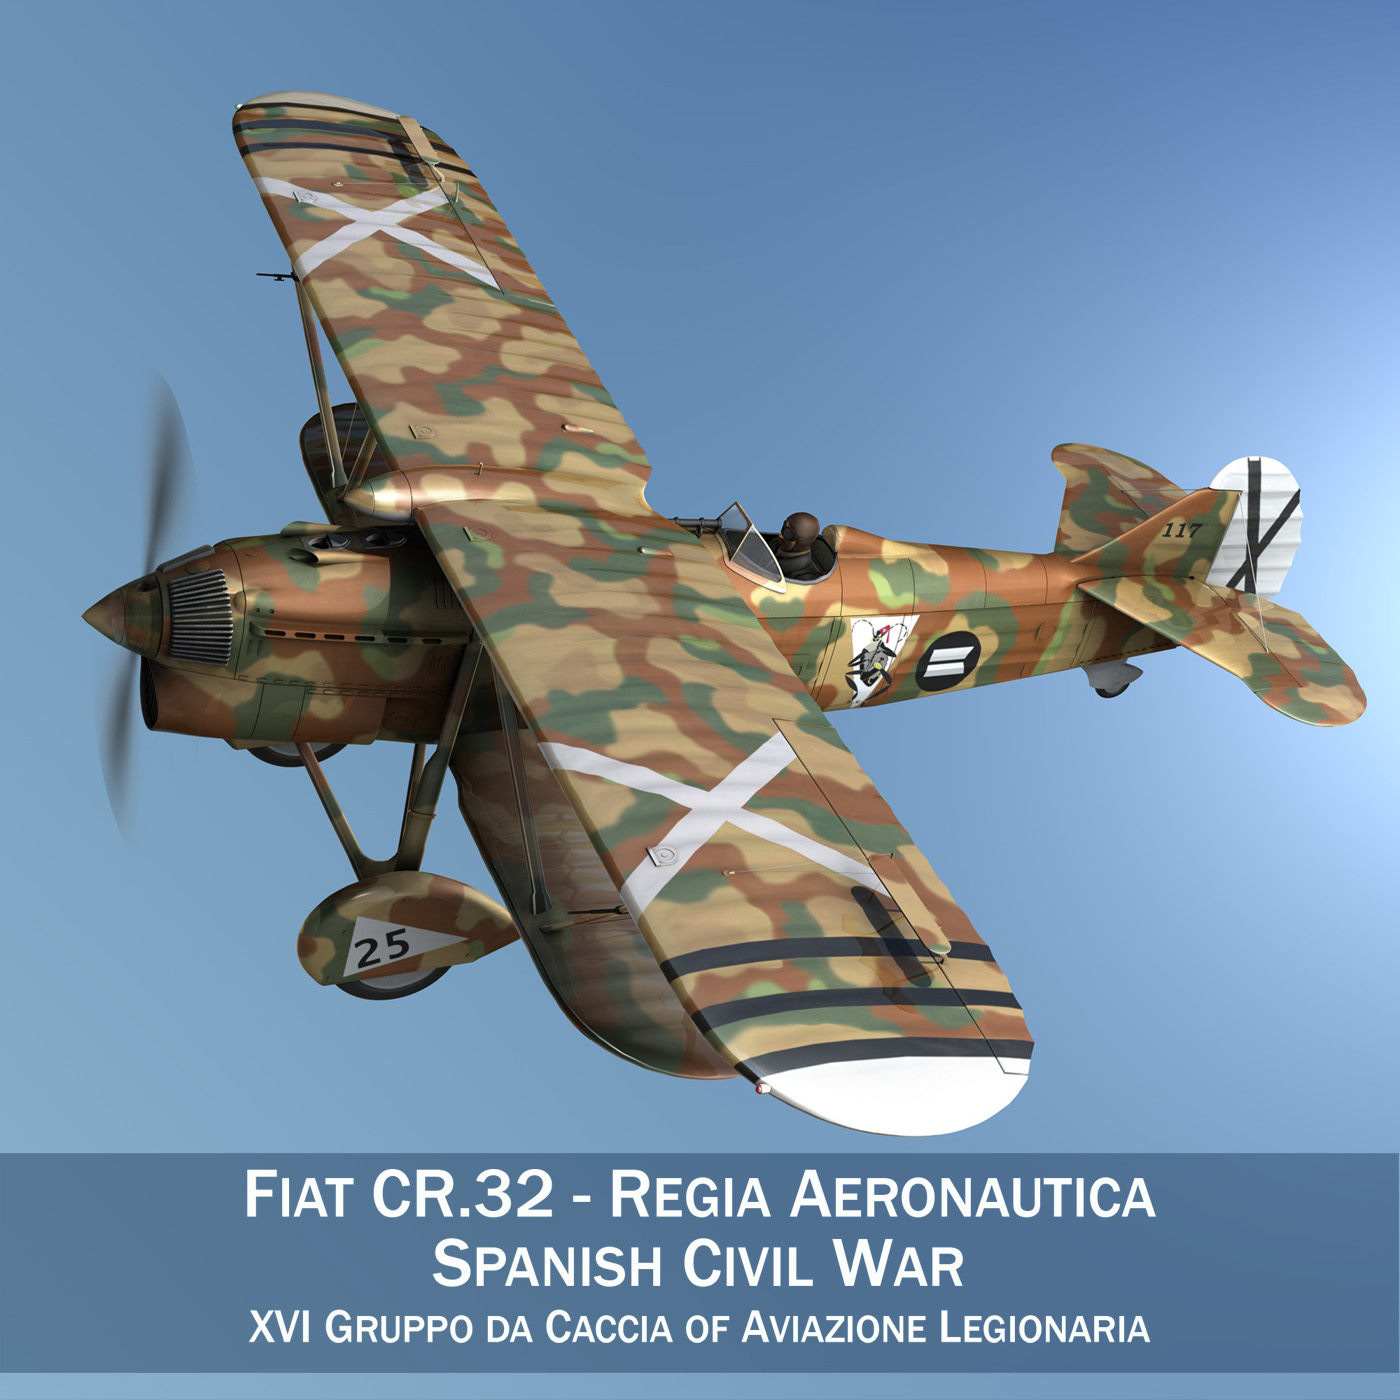 fiat cr.32 - włochy air force - xvi gruppo 3d model fbx lw lws obj c4d 266300